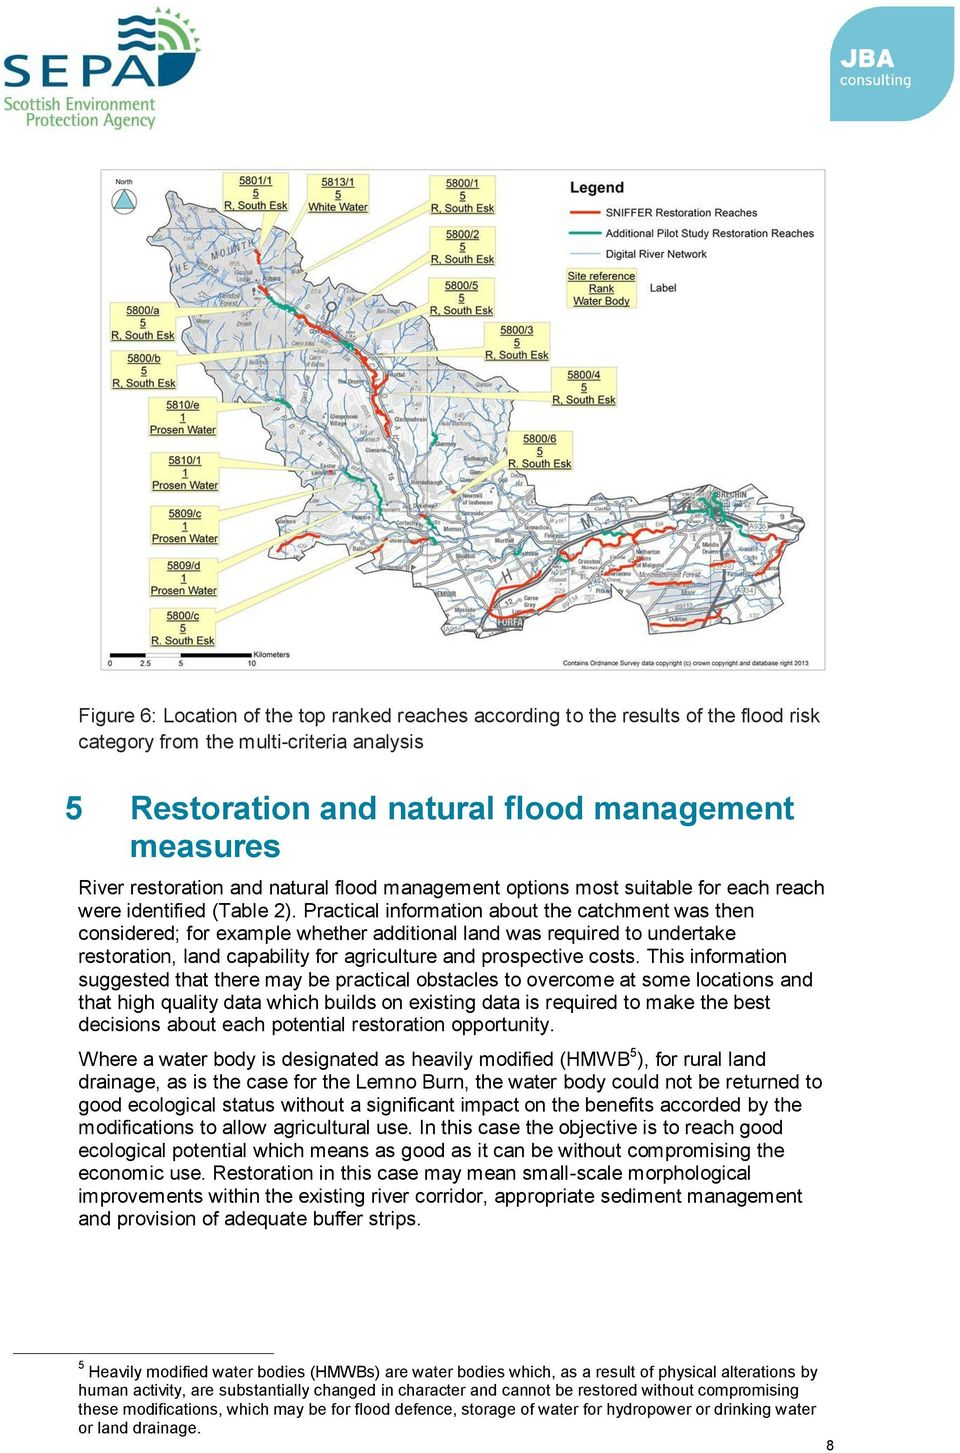 Practical information about the catchment was then considered; for example whether additional land was required to undertake restoration, land capability for agriculture and prospective costs.